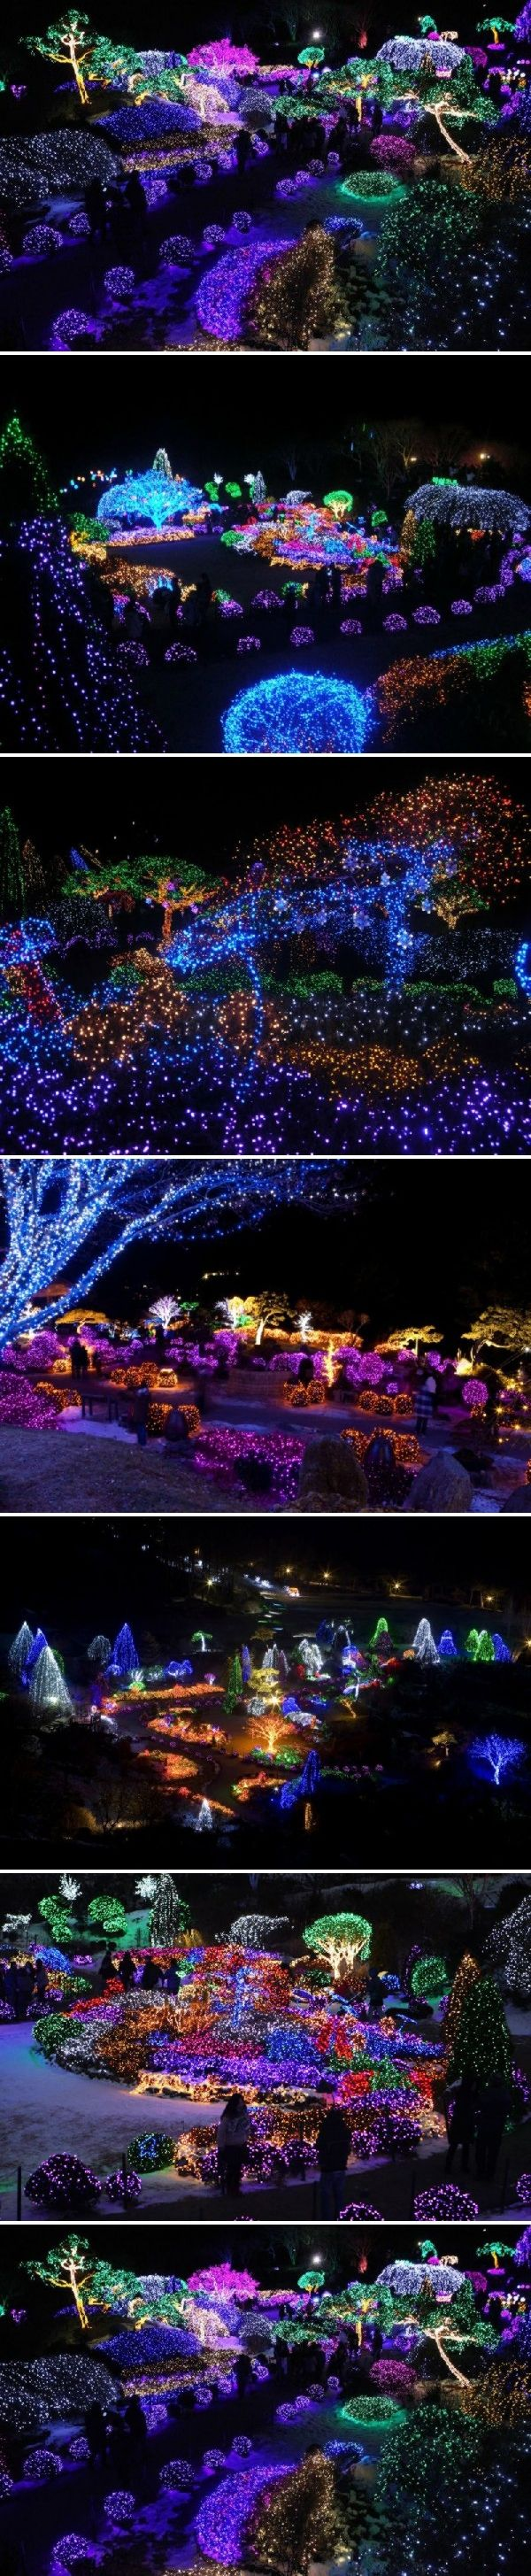 Christmas Festival, Garden of Morning Calm in South Korea                                                                                                                                                                                 More